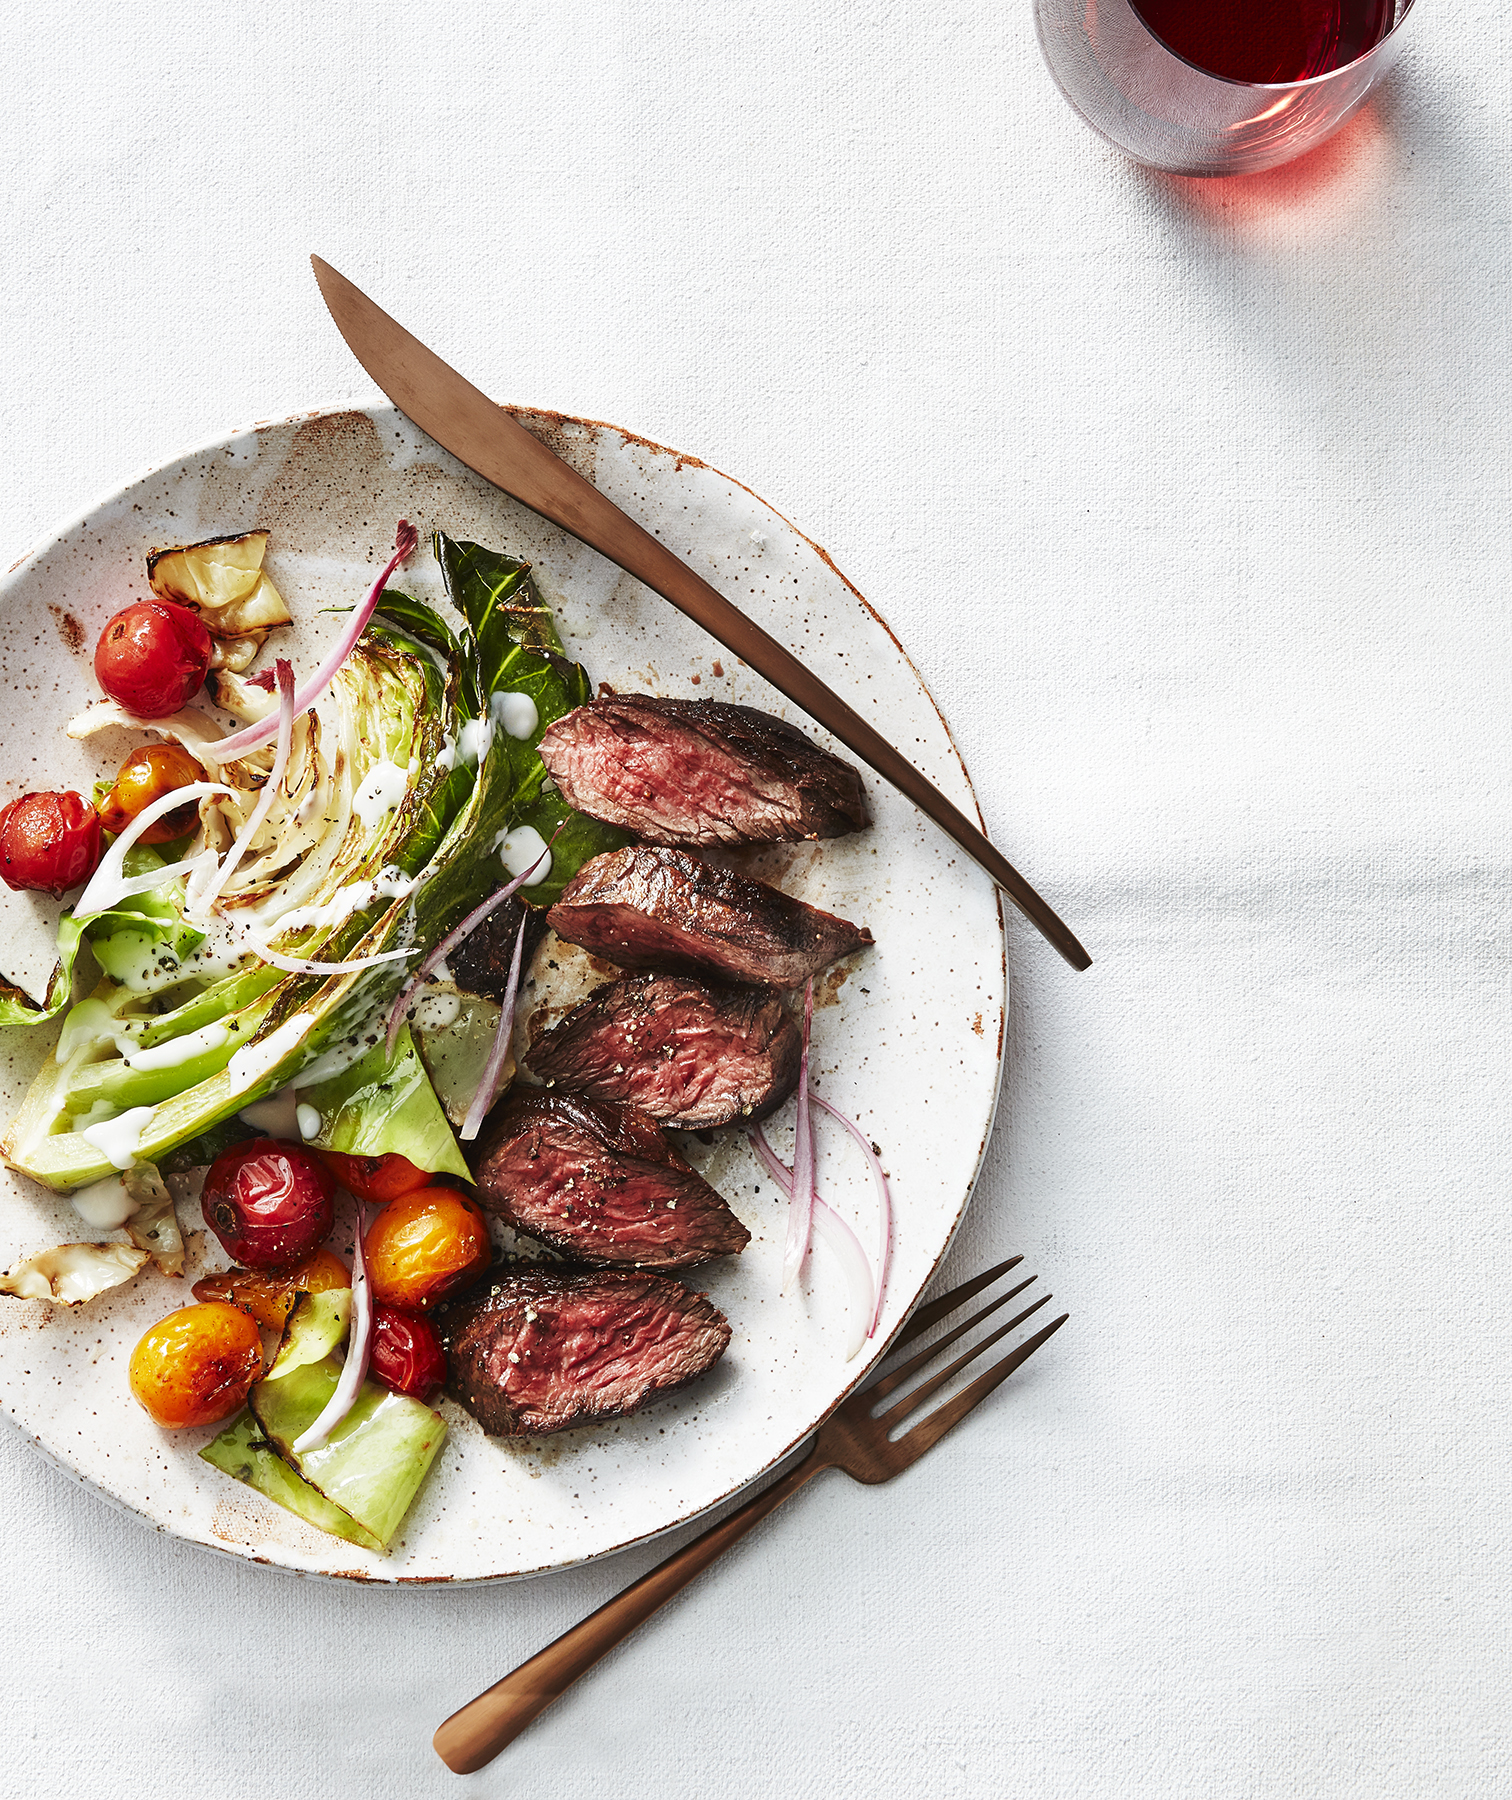 seared-hanger-steak-warm-cabbage-wedges